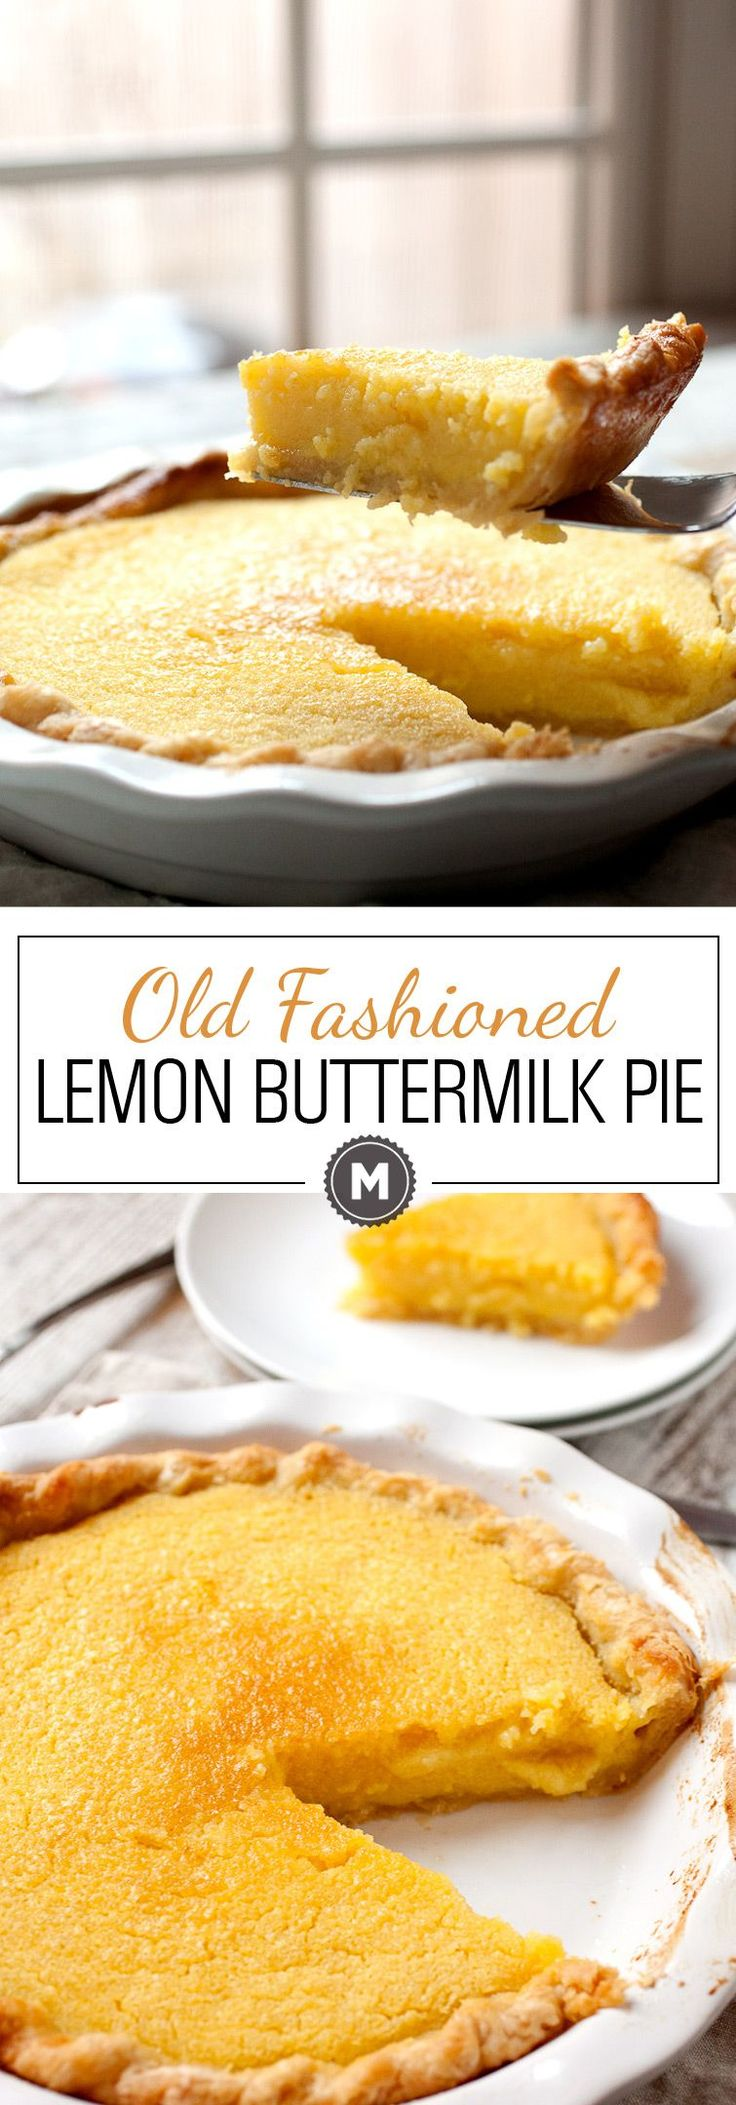 Old Fashioned Lemon Buttermilk Pie: This custard pie is such an unassuming pie. That's good news because it means people won't go for it first. But, once someone tries it, it'll go quick. Easy to make with just a few ingredients! | macheesmo.com